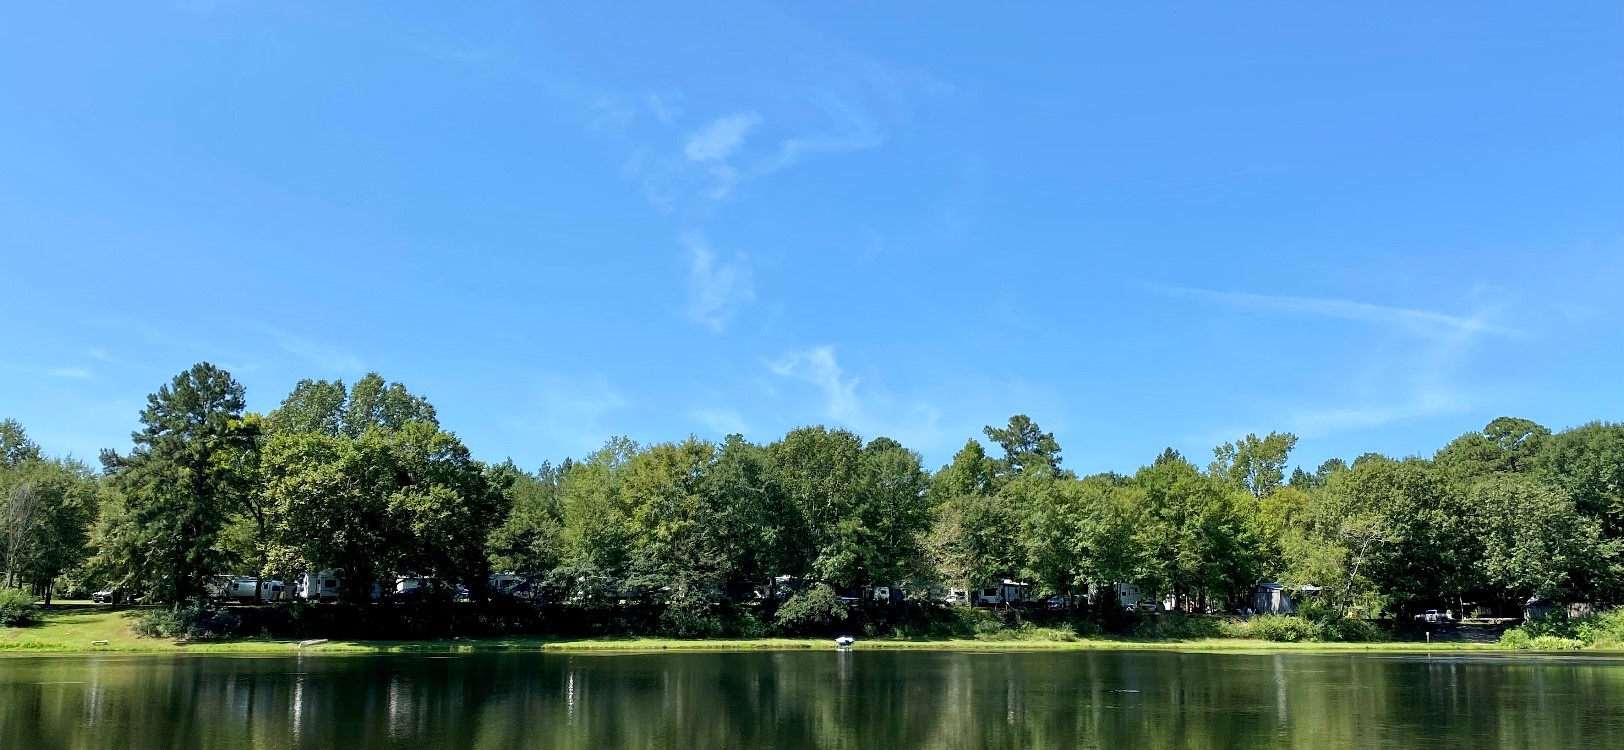 View of Wendy Oaks RV Resort from across the lake